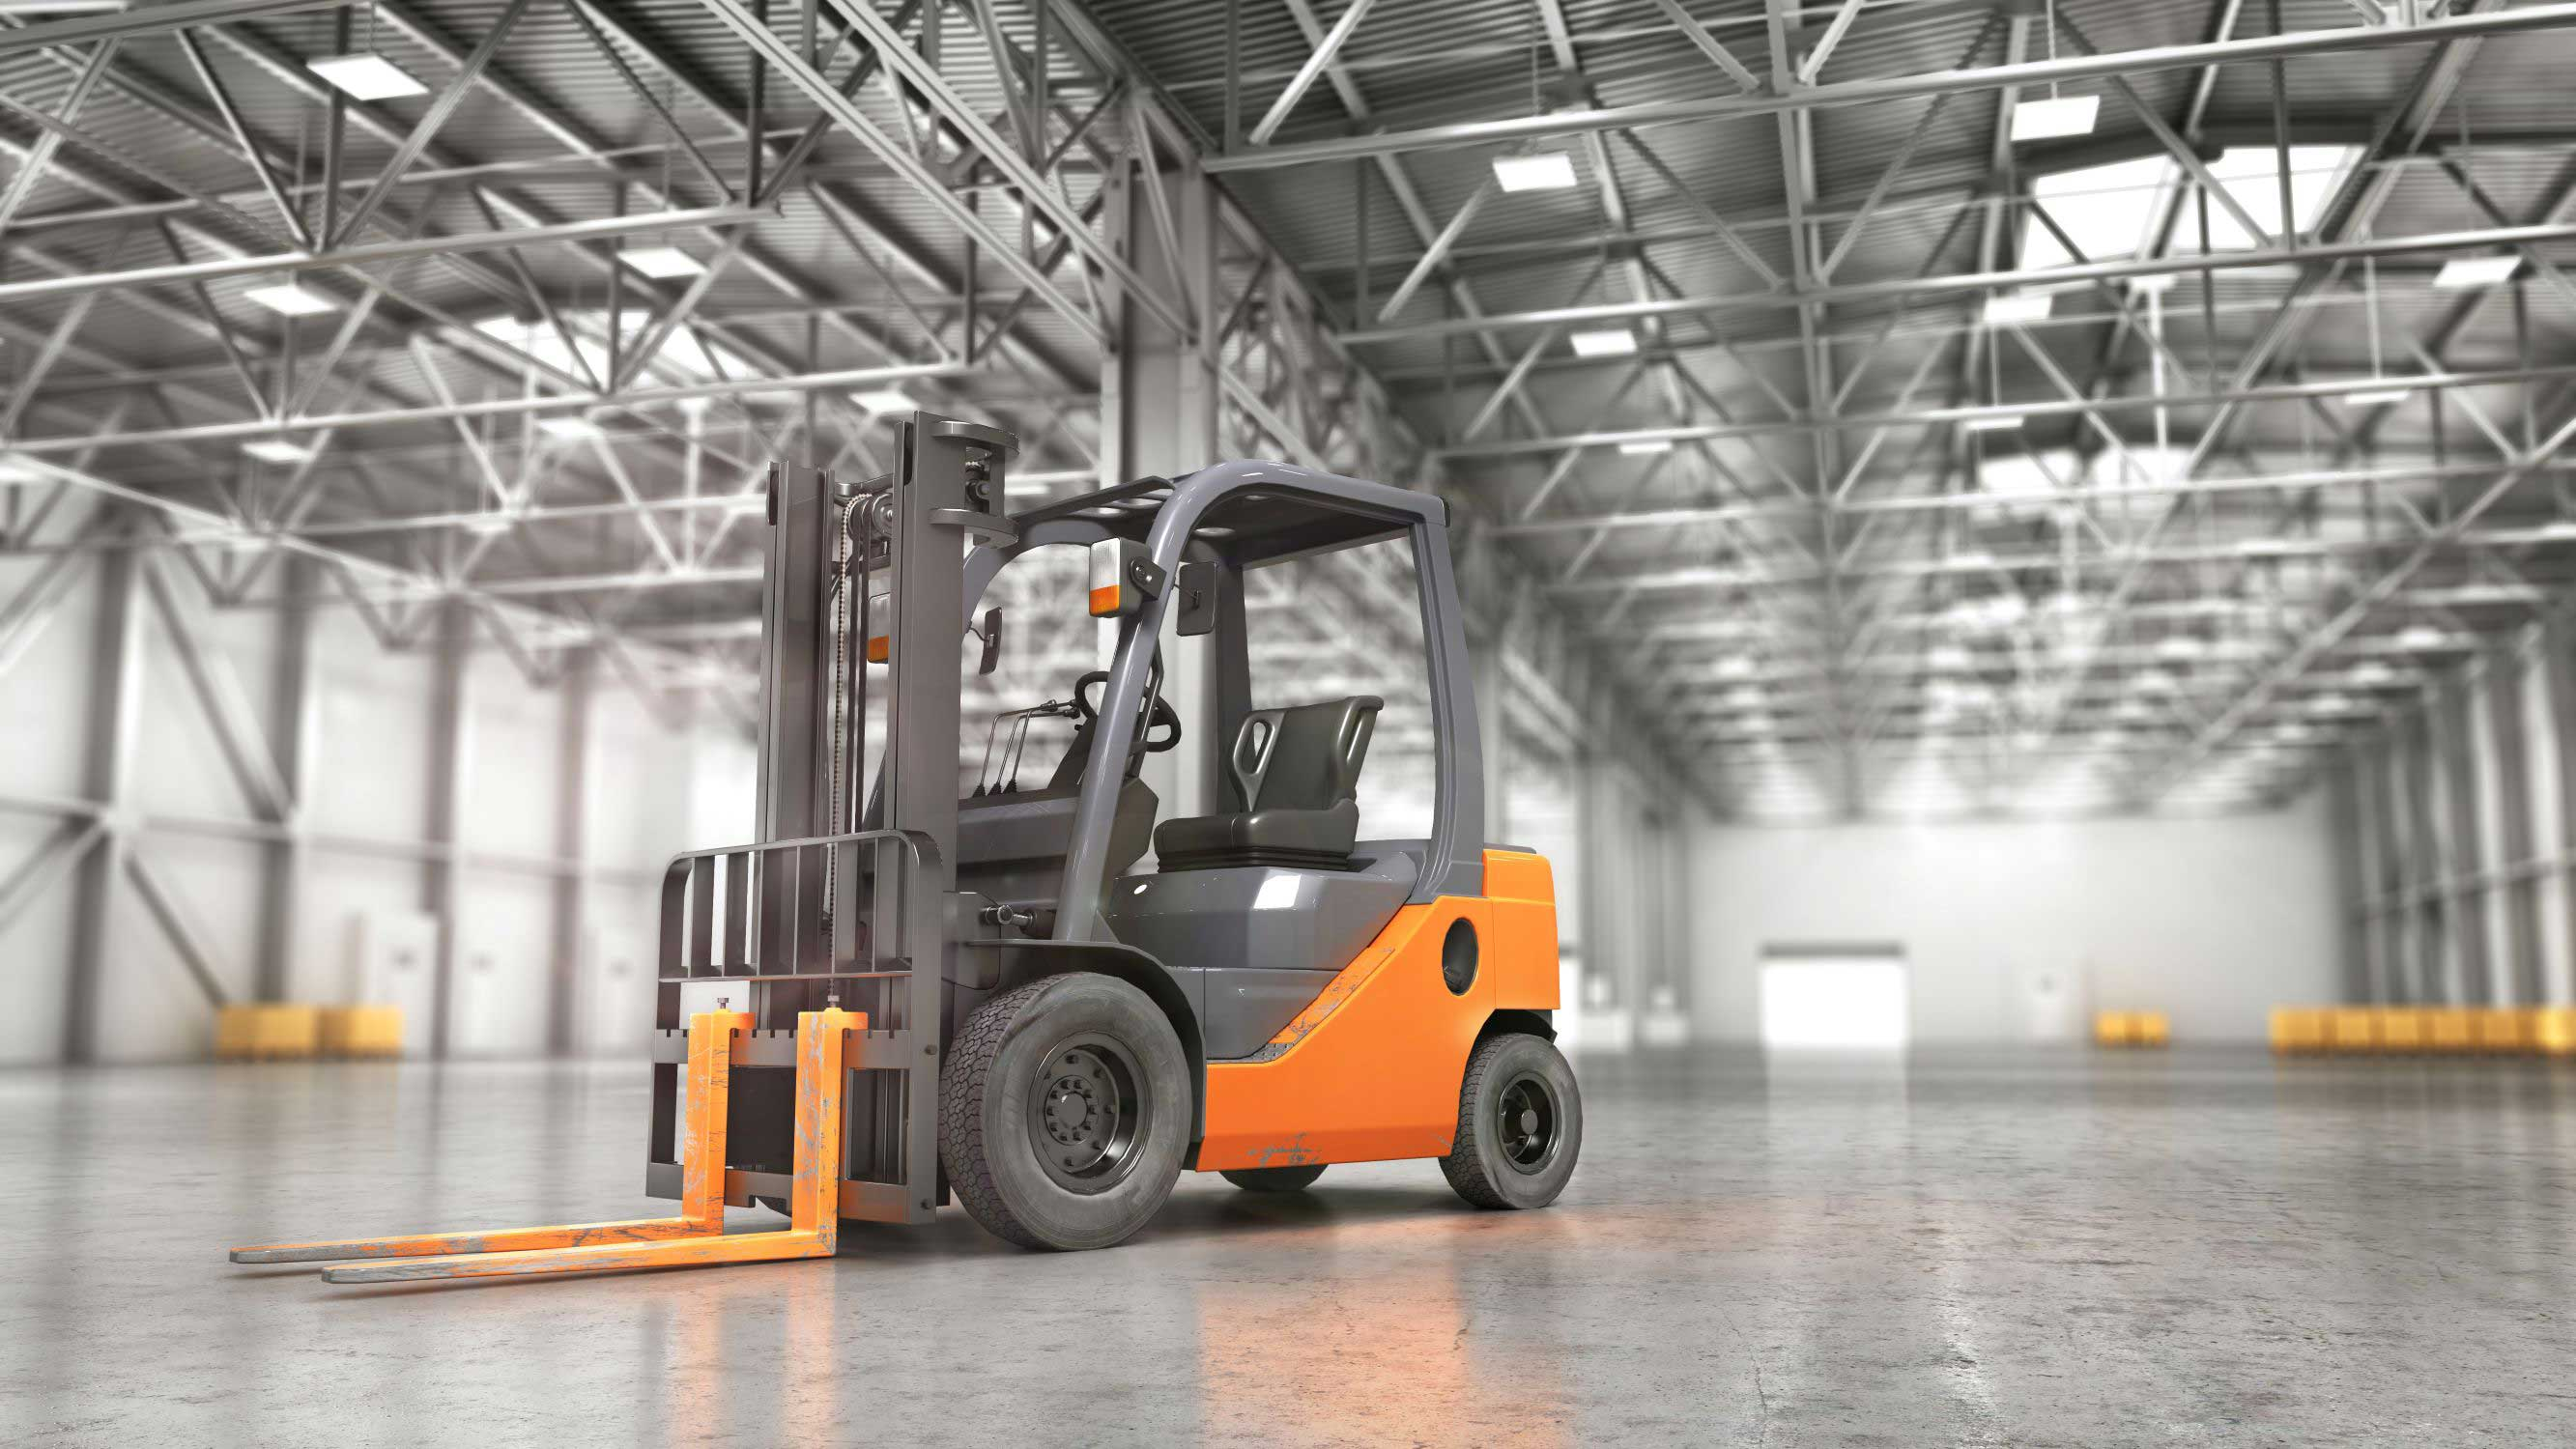 Forklift Mast Types: How to Find the Best Fit